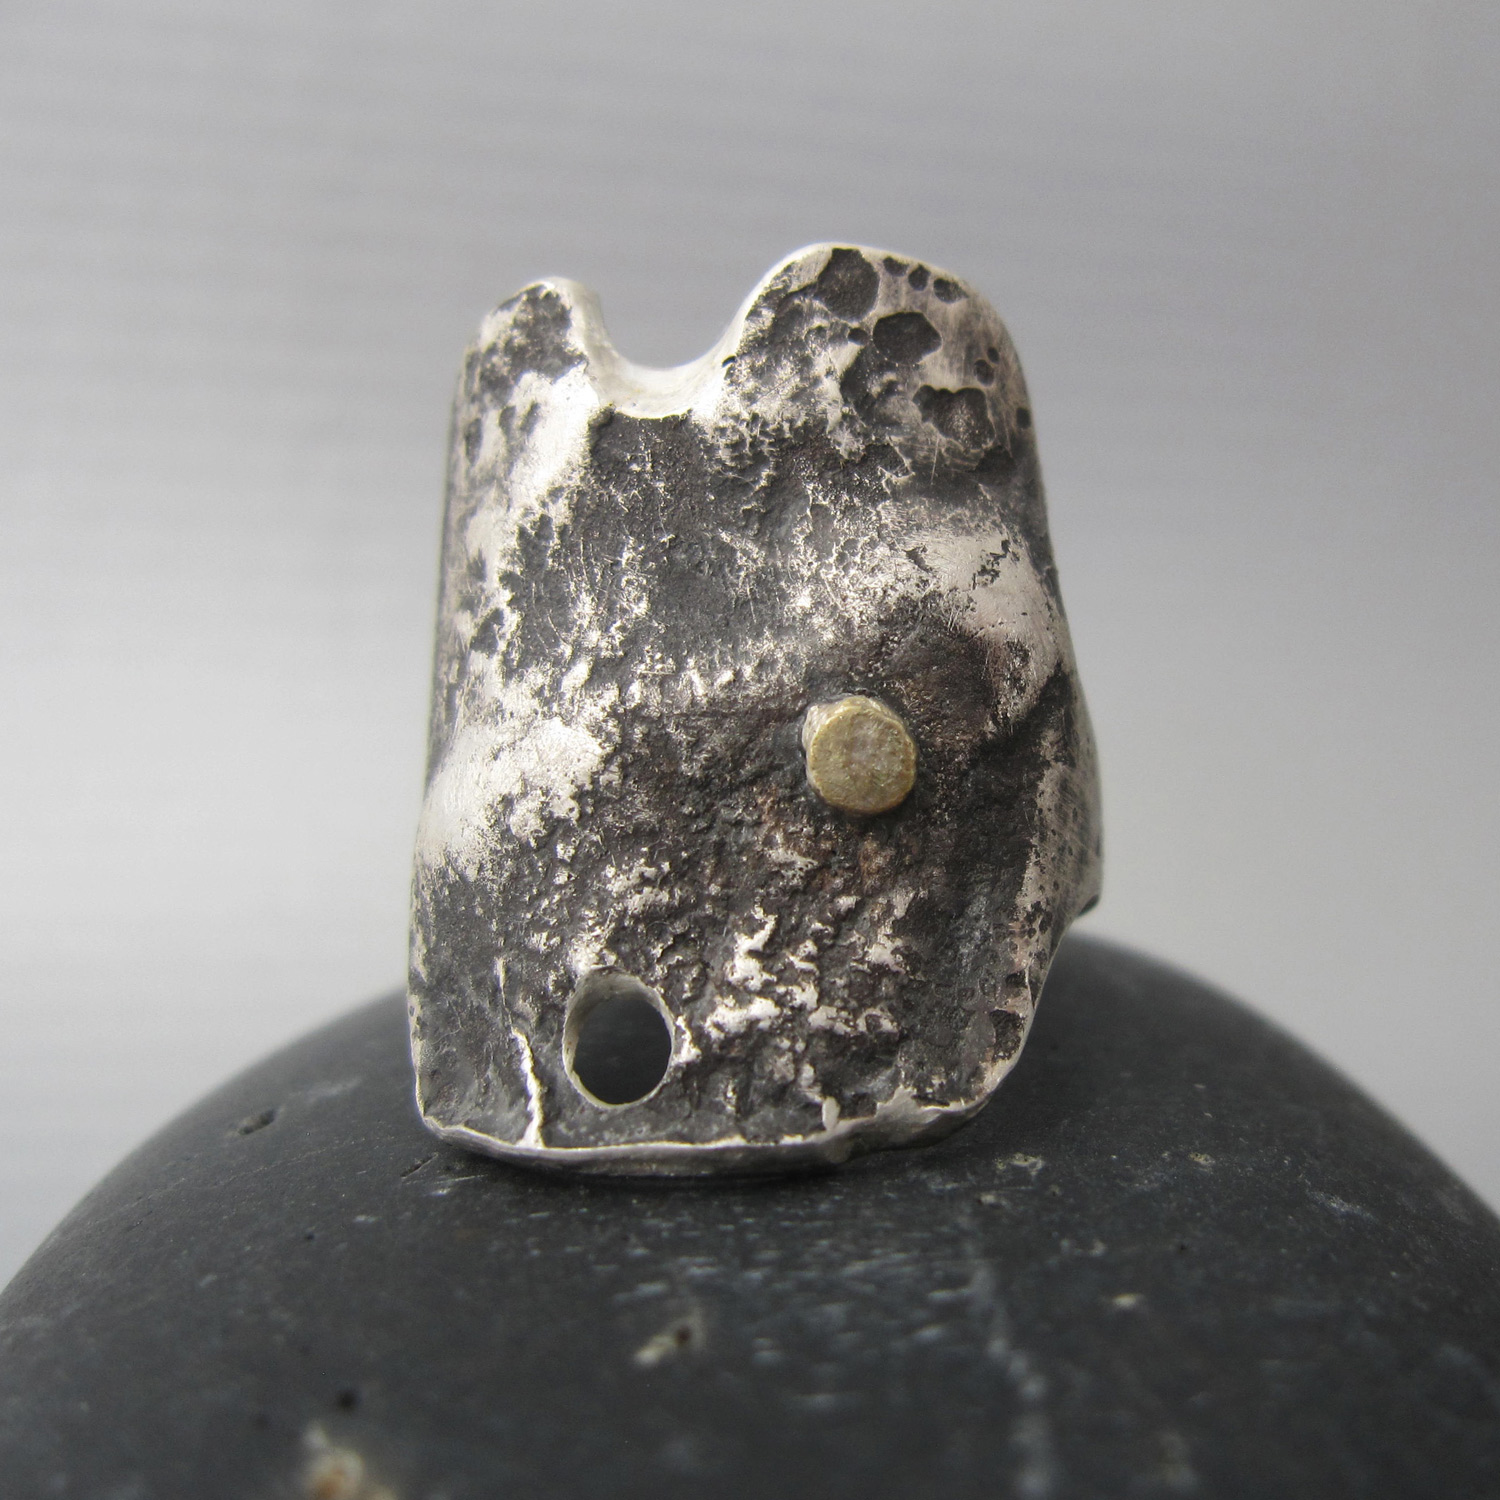 Fondo marino ring in reclaimed silver and 14k solid gold by Maddalena Bearzi